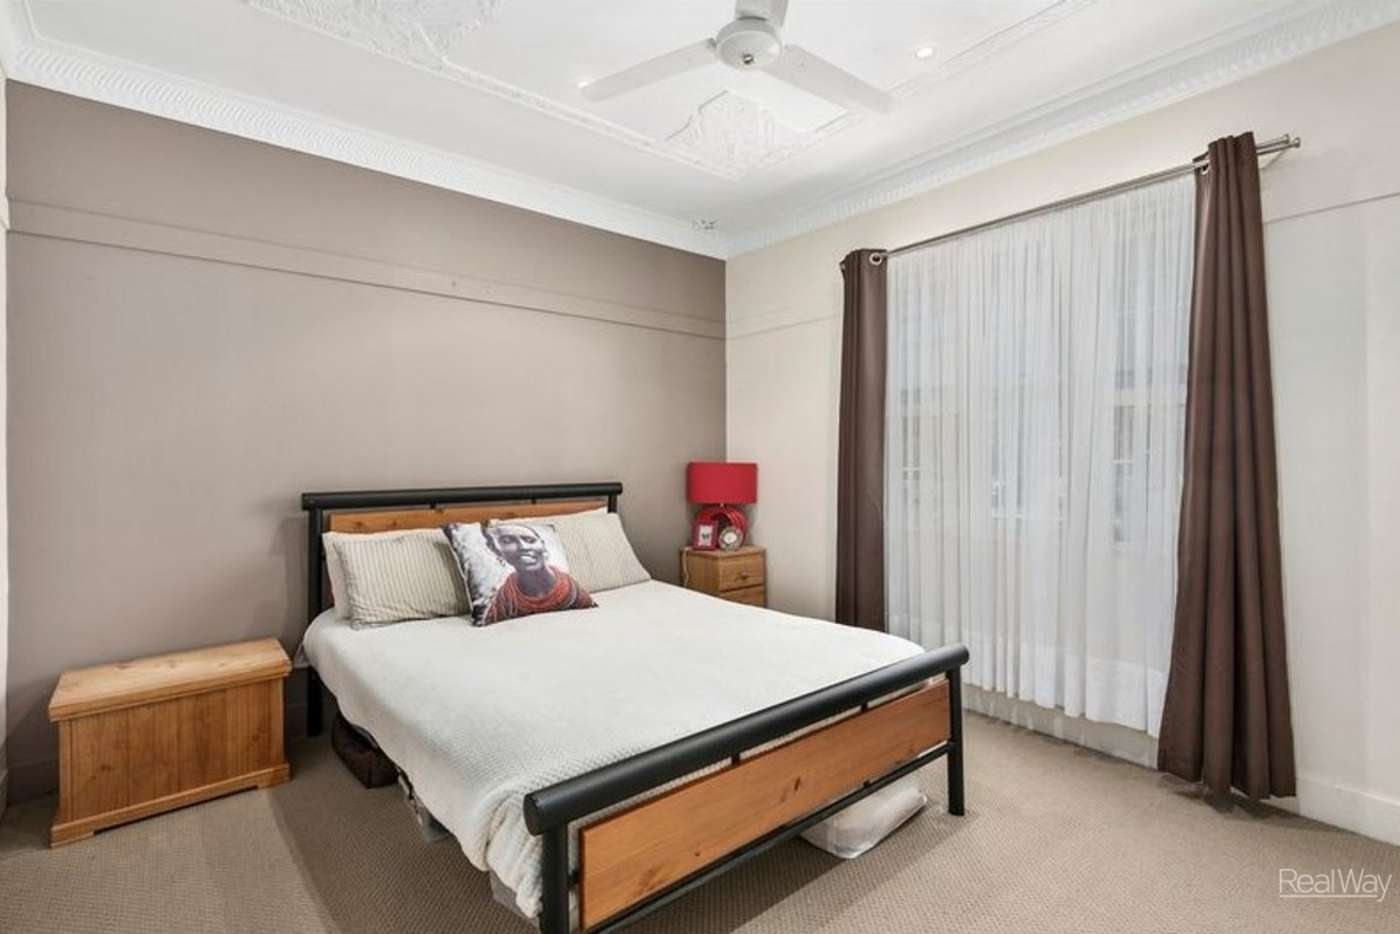 Sixth view of Homely house listing, 3 Ascot Street, Newtown QLD 4350